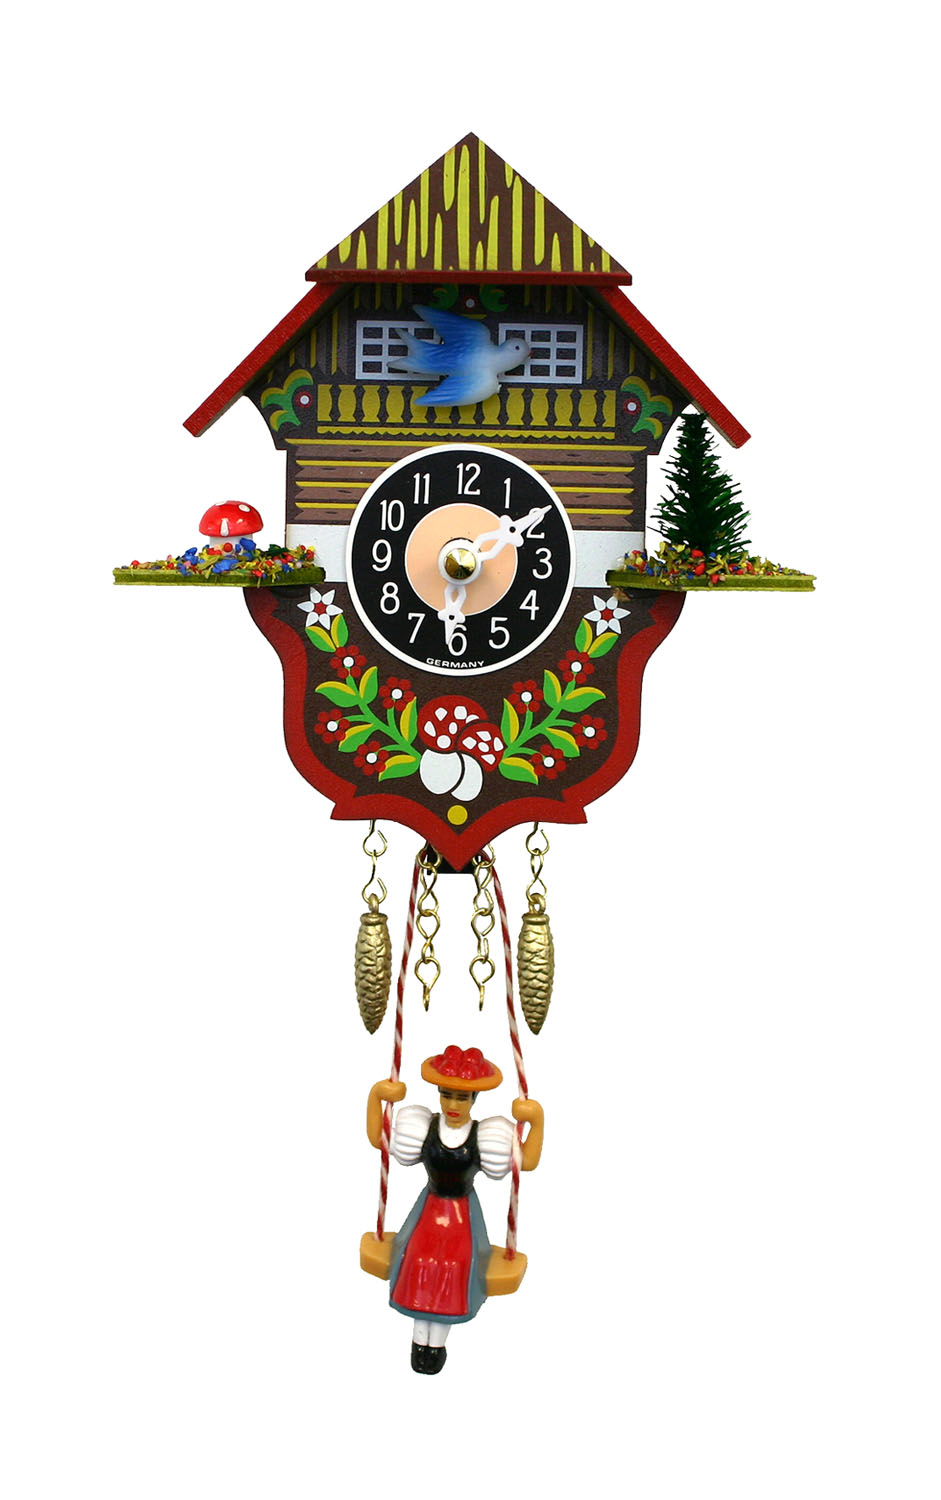 """166SQ-Engstler Battery-operated Clock - Mini Size - 5""""H x 4.25""""W x 2.75""""D"""